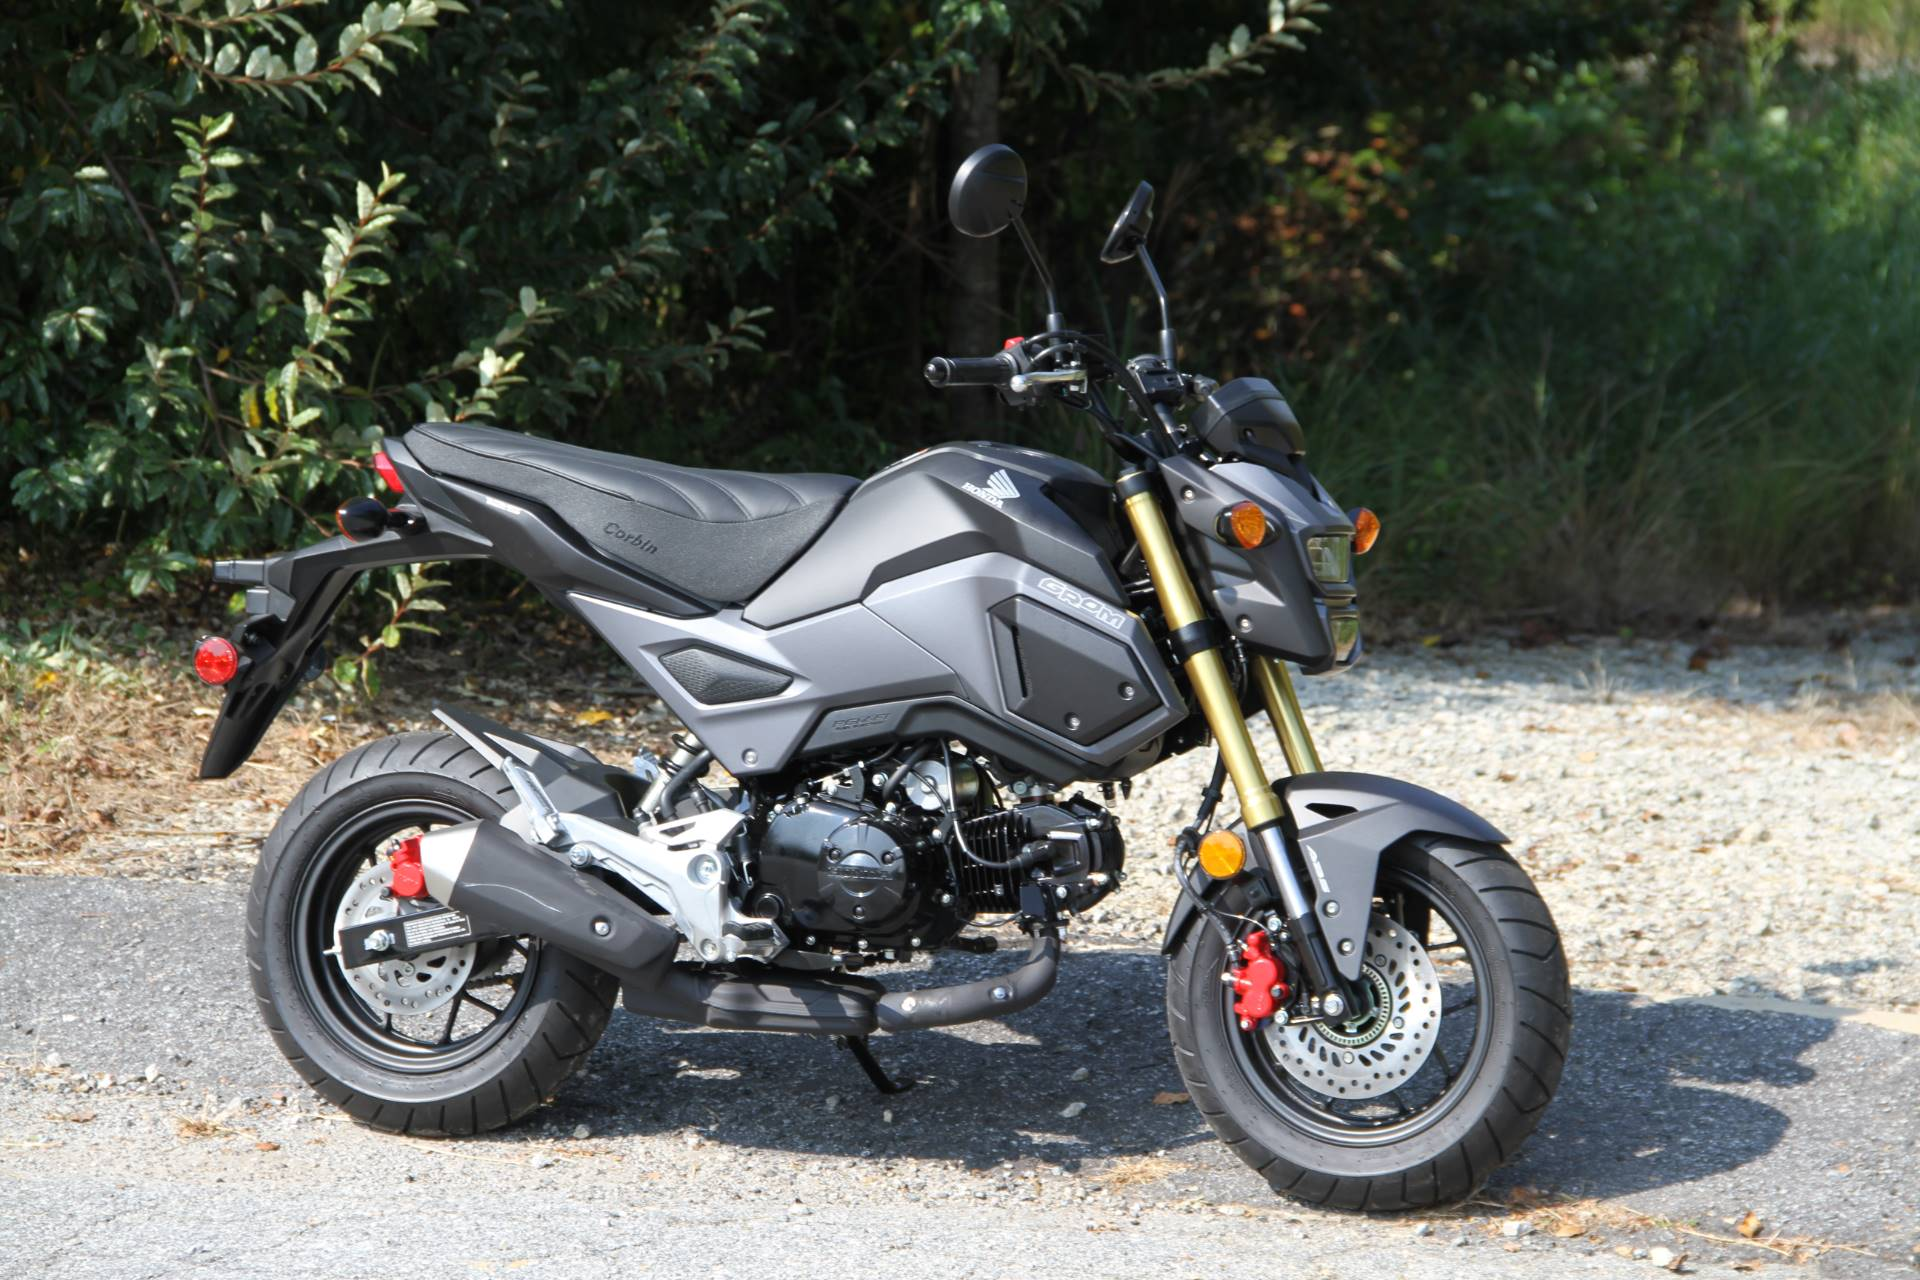 New 2018 Honda Grom ABS Motorcycles in Hendersonville NC